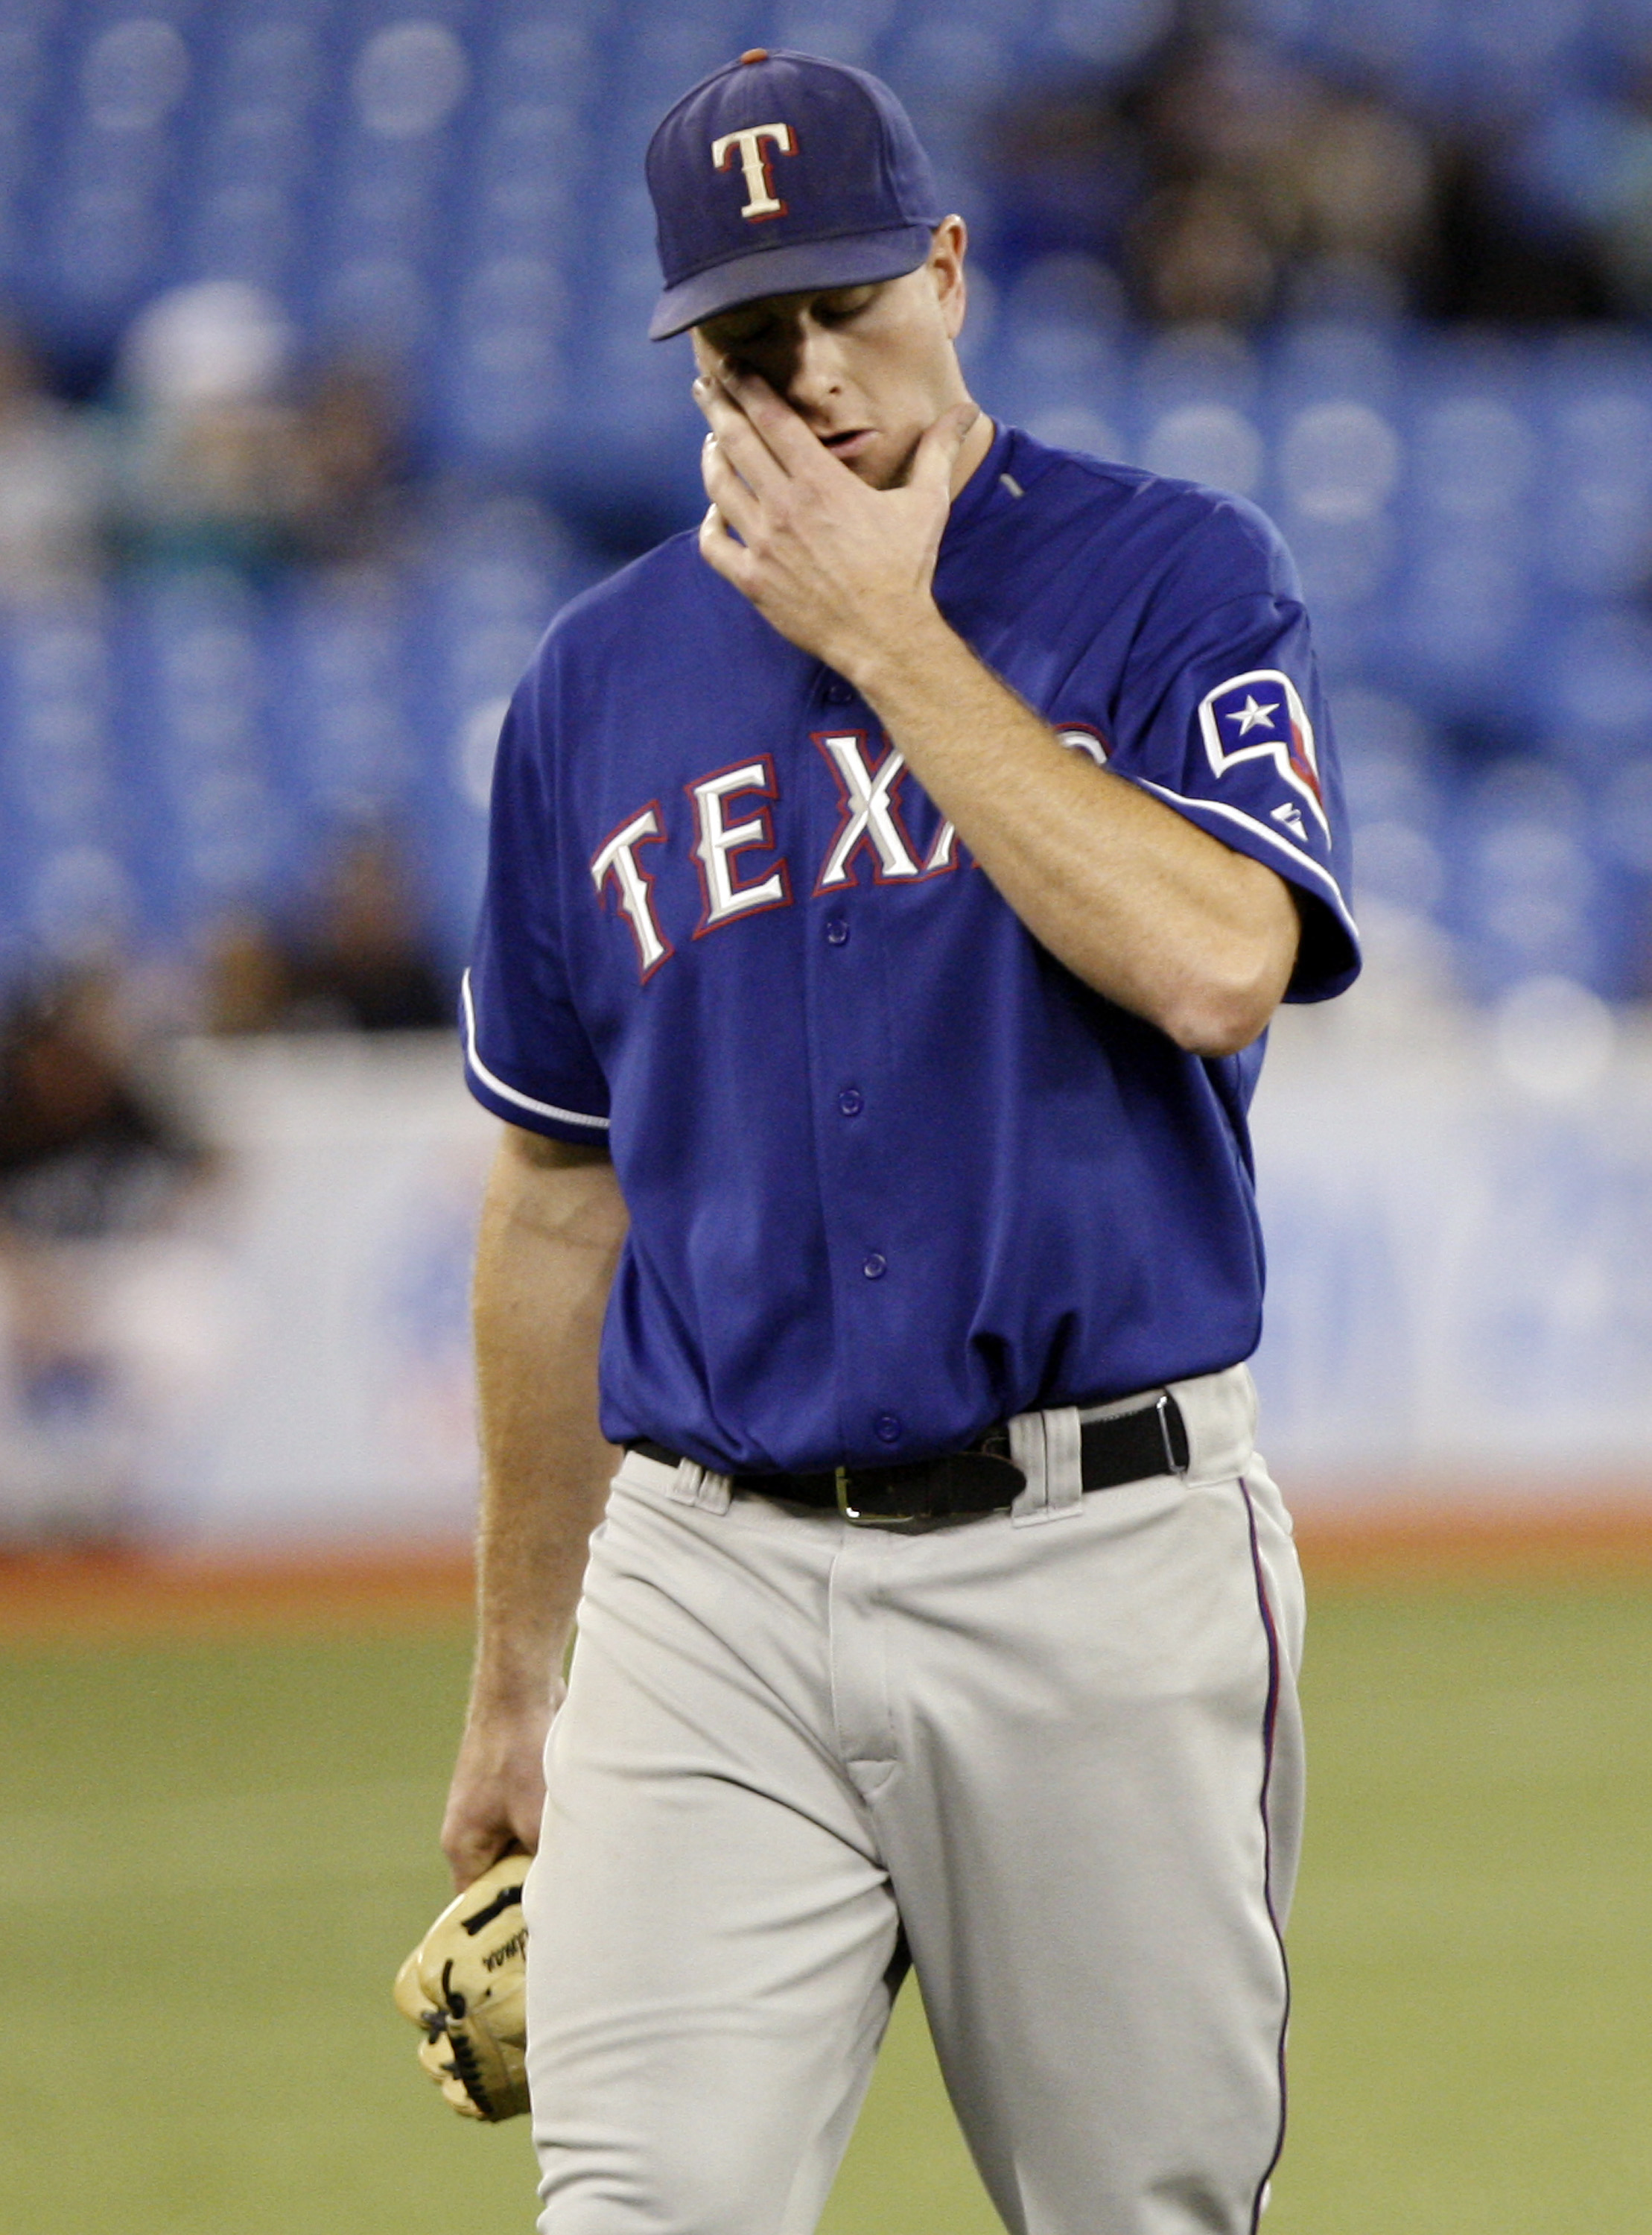 6d8c90a690f TORONTO - MAY 15  Scott Feldman  39 of the of the Texas Rangers walks.  Abelimages Getty Images. The Rangers have worn a blue alternate uniform ...